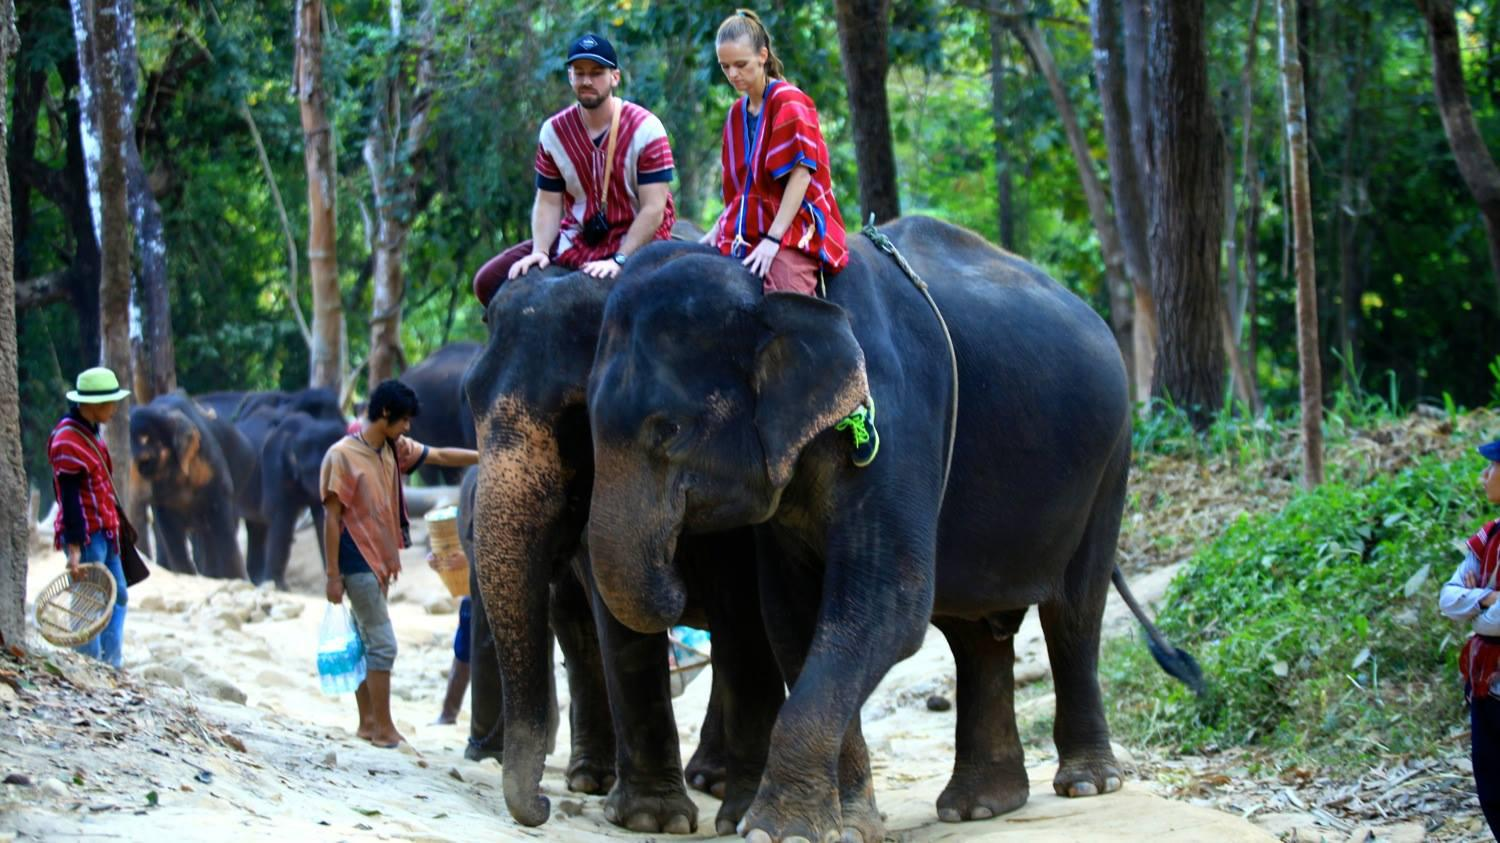 Elephant sanctuary in Chiang Mai, Thailand